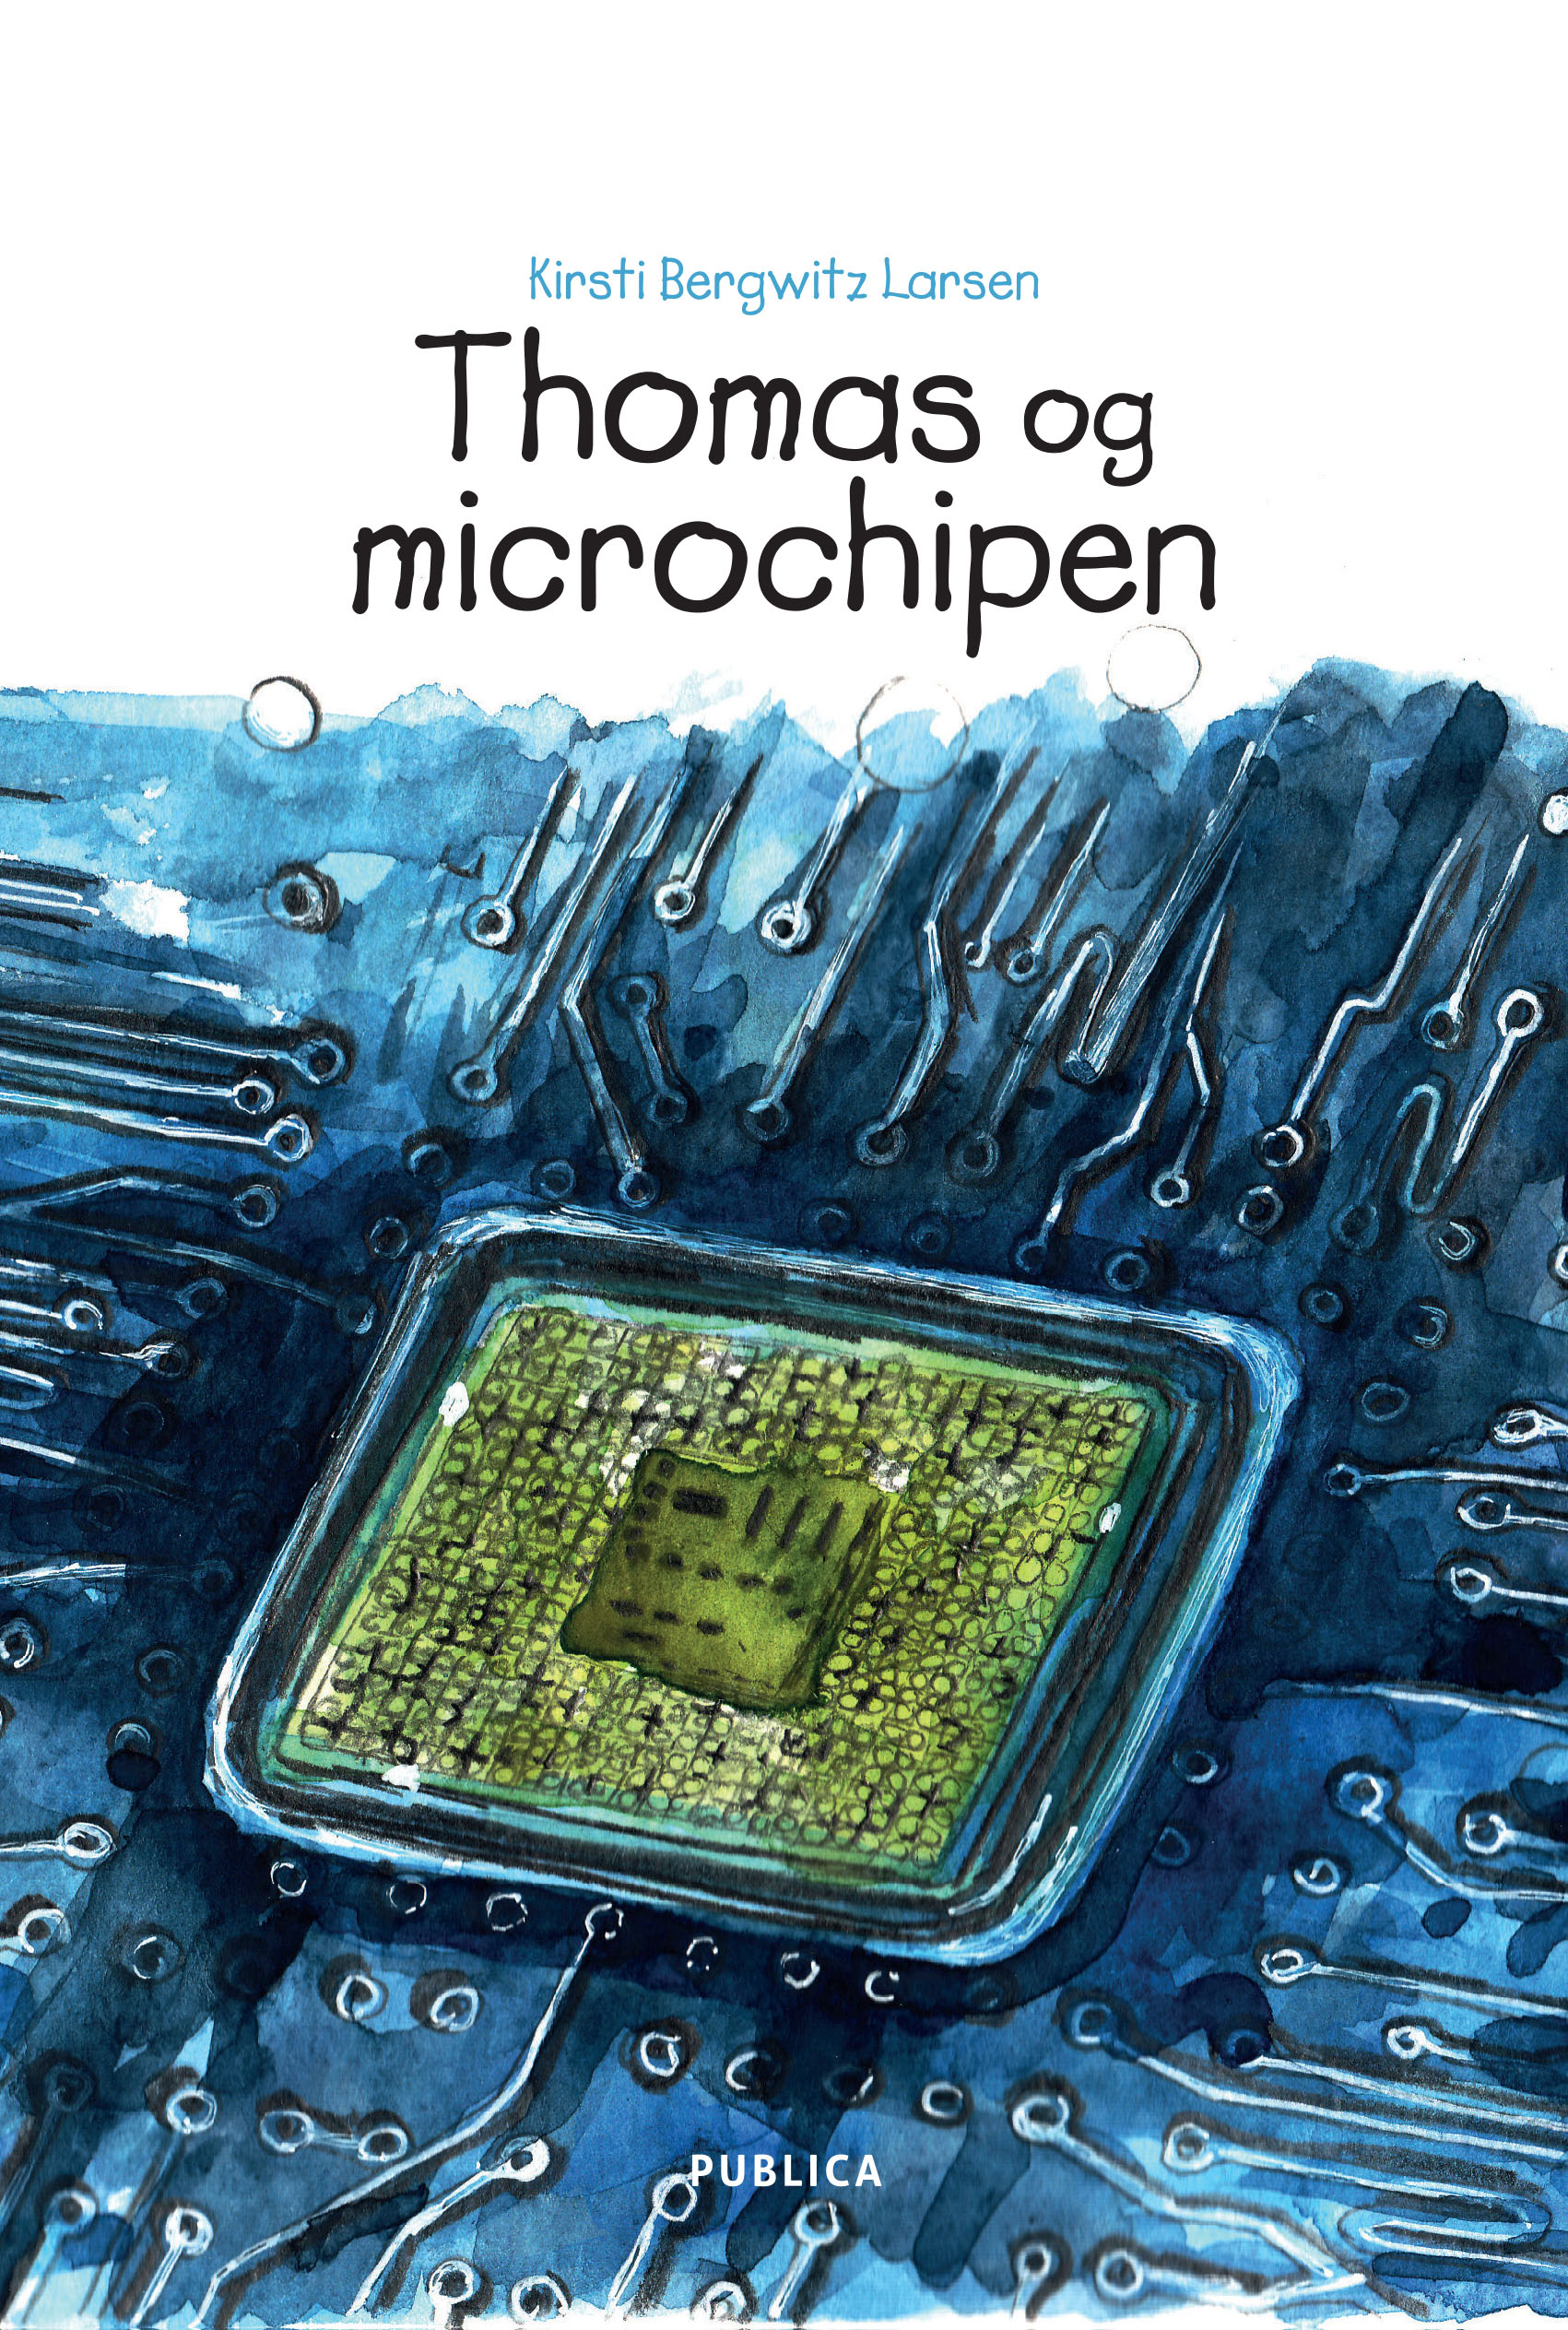 Thomas og microchipen